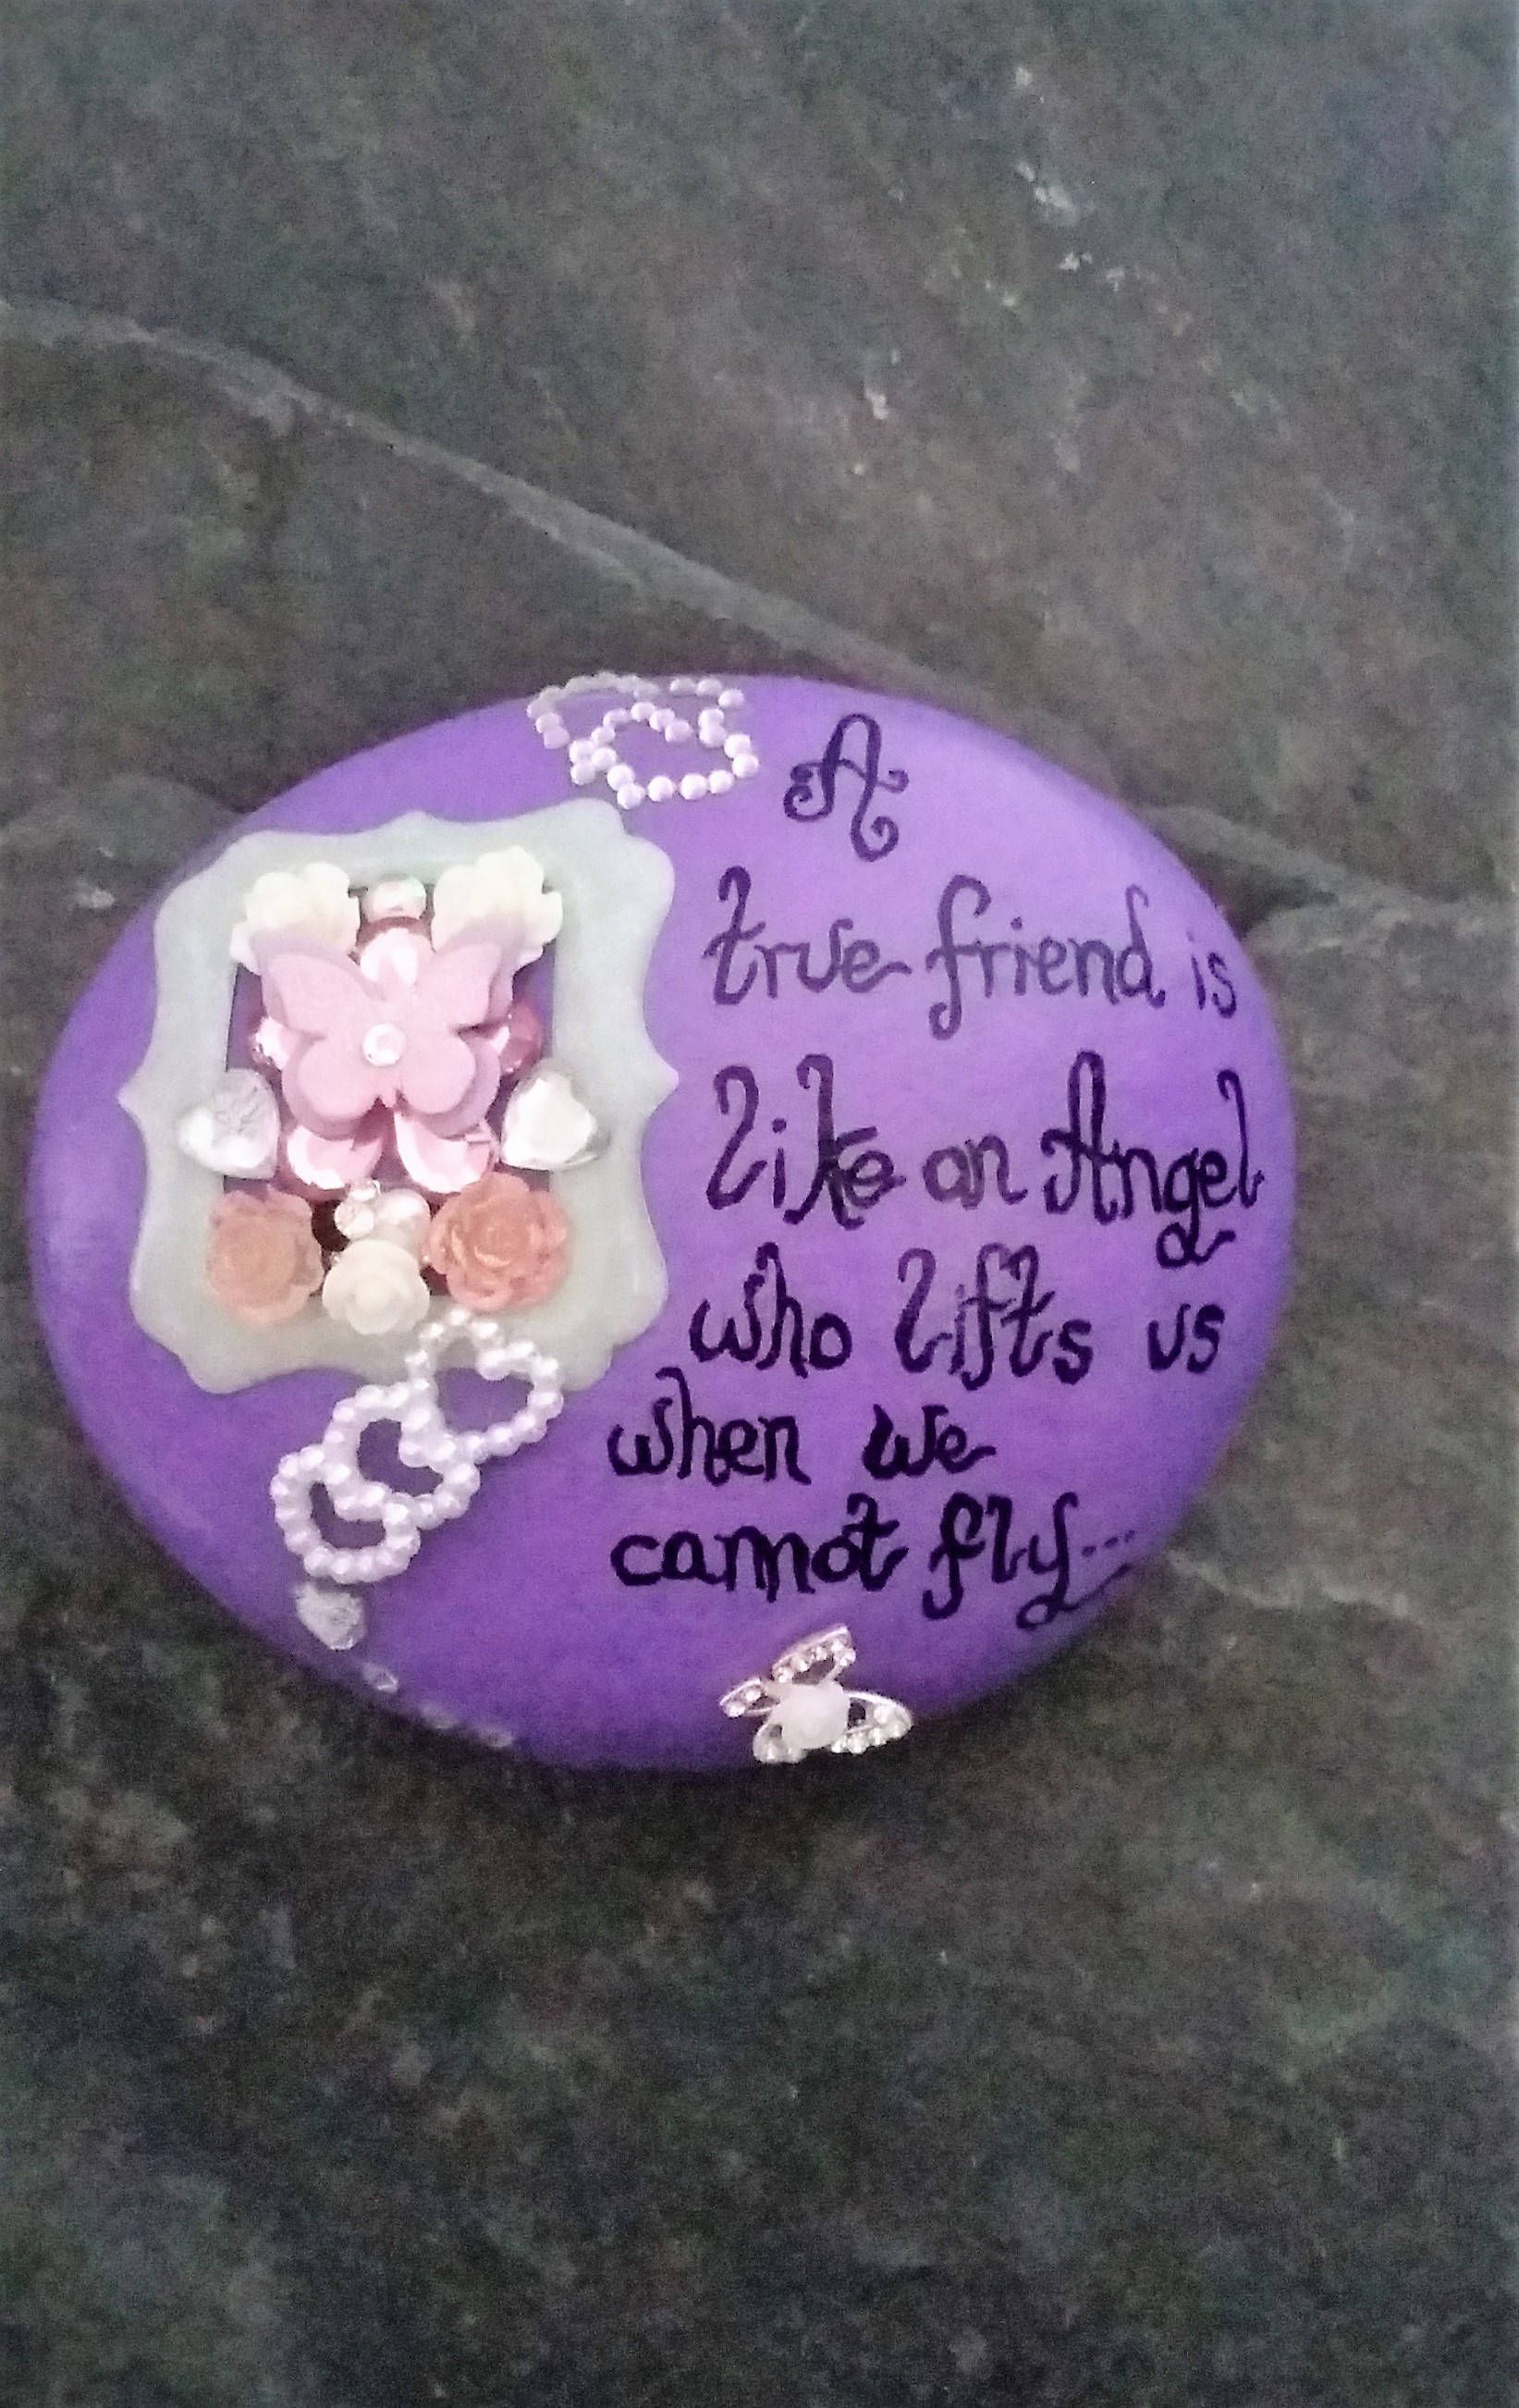 Decorative Friendship Stone Gift For Friends Special Friend Quote Personalized Keepsake Unique By Pebbles4thought On Etsy